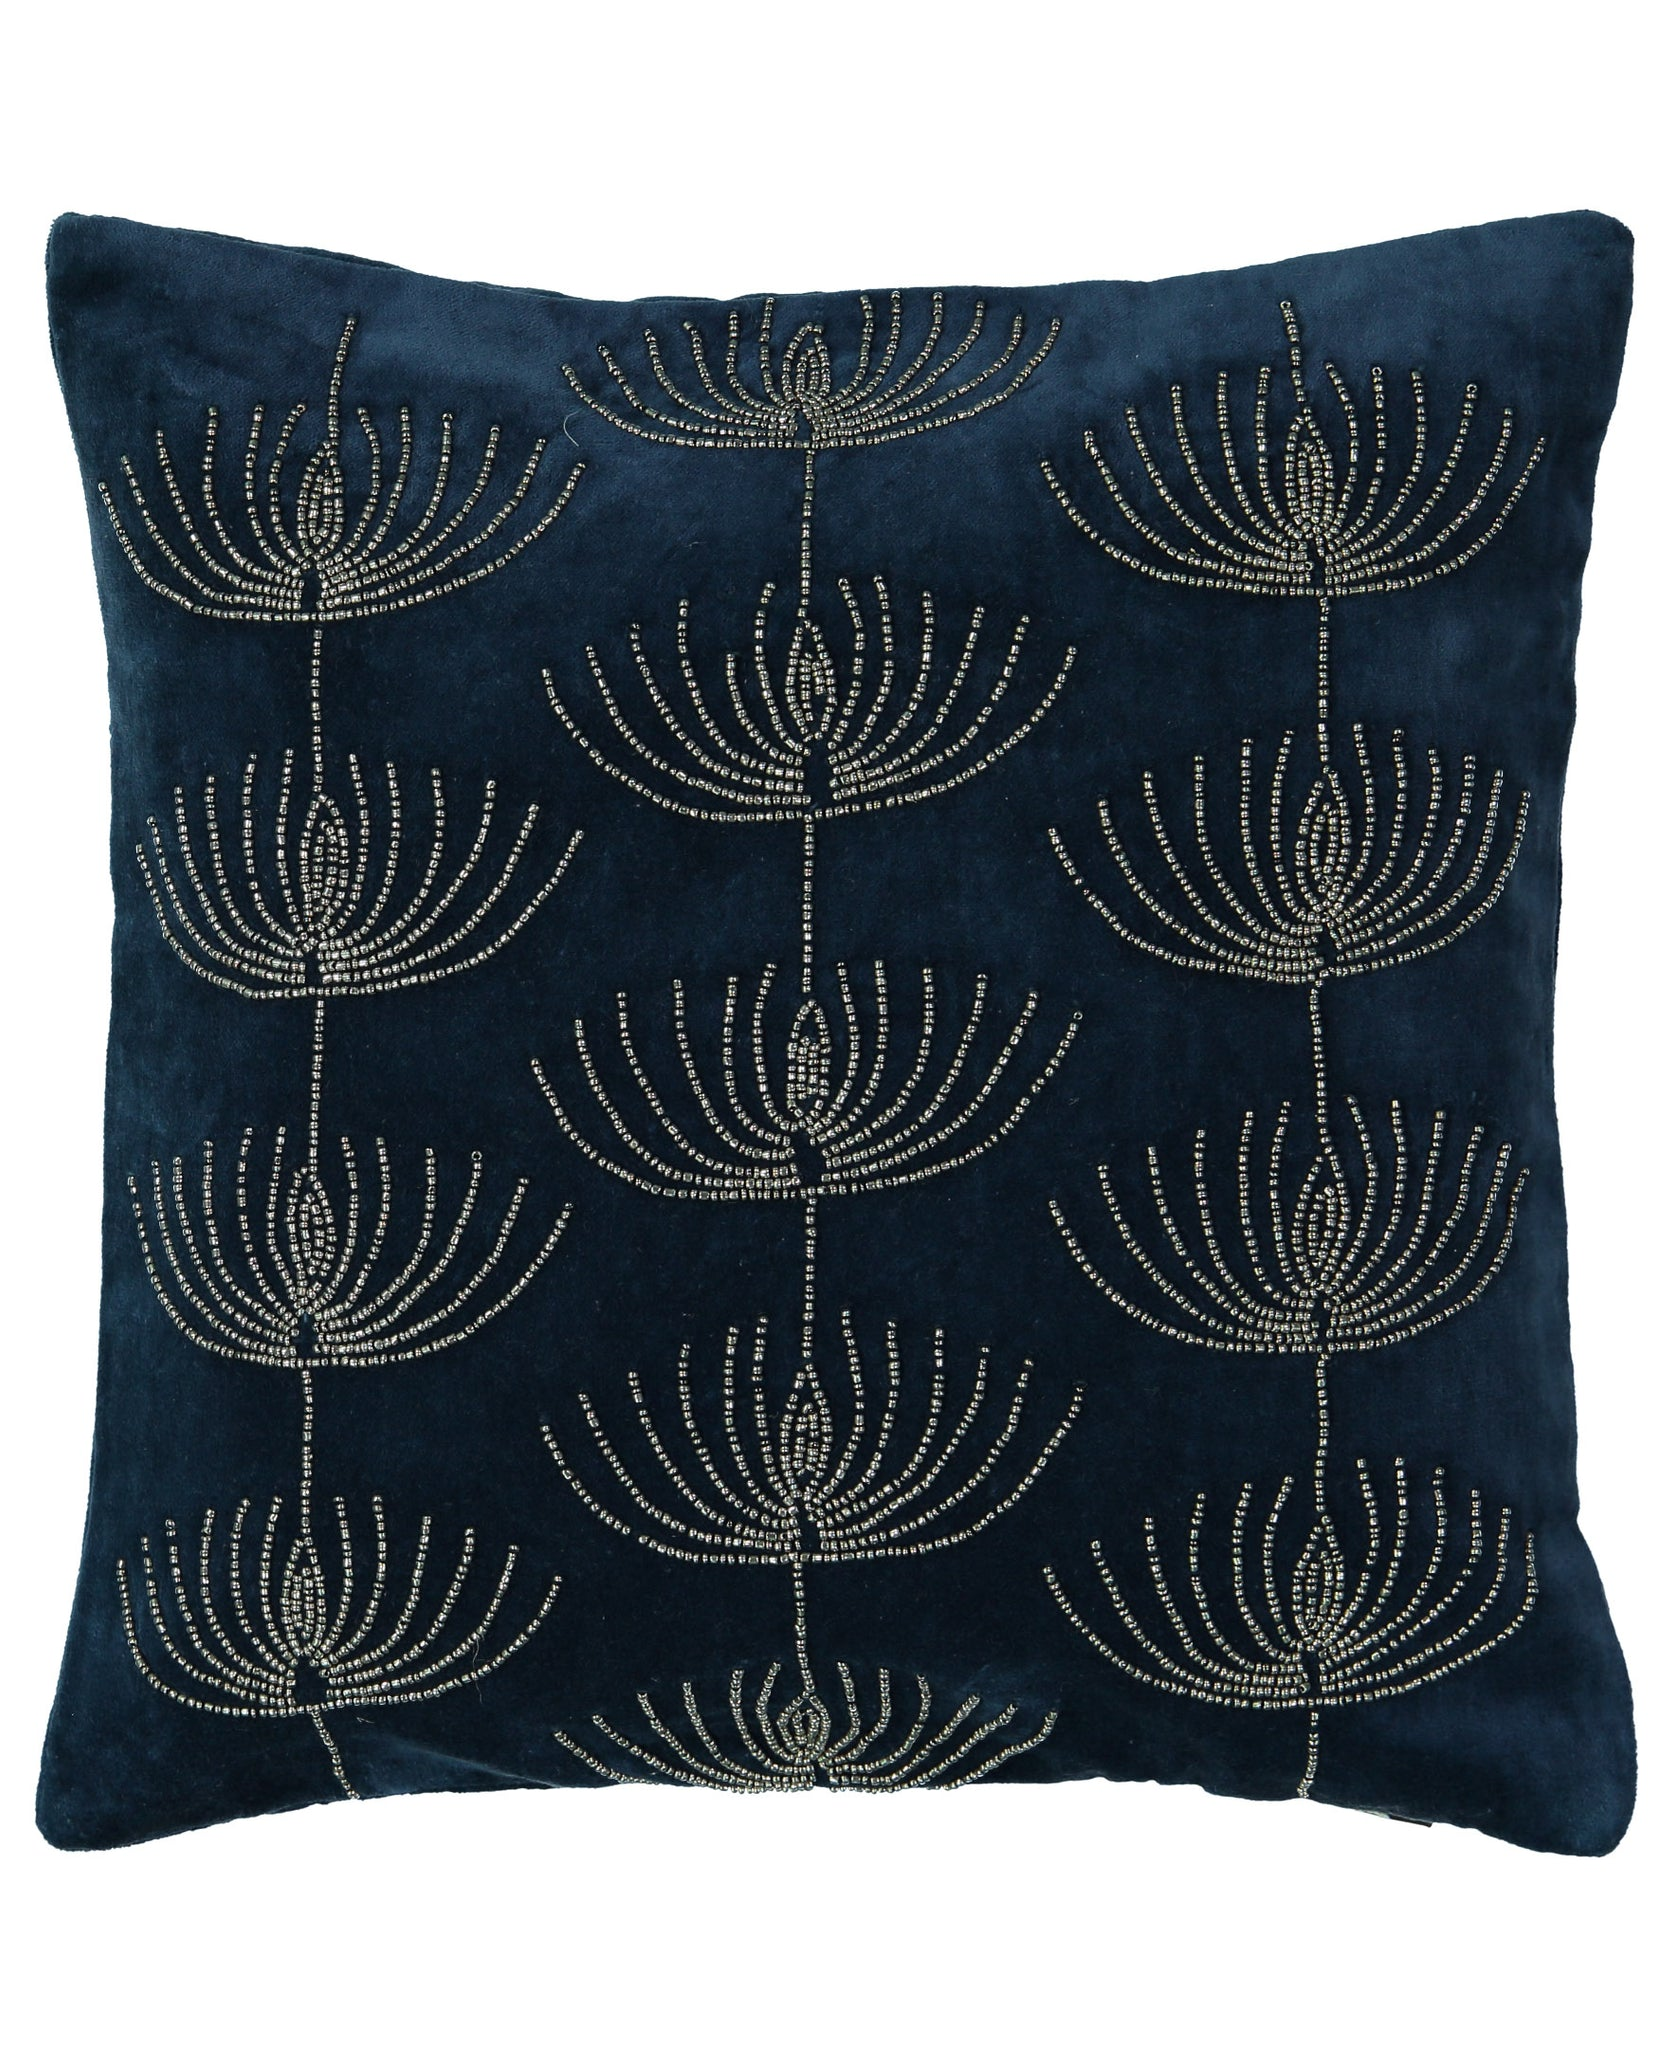 "Jewish Candelabra Beads Velvet Embroidery Decorative Pillow, 14"" X 14"" Mod Lifestyles"